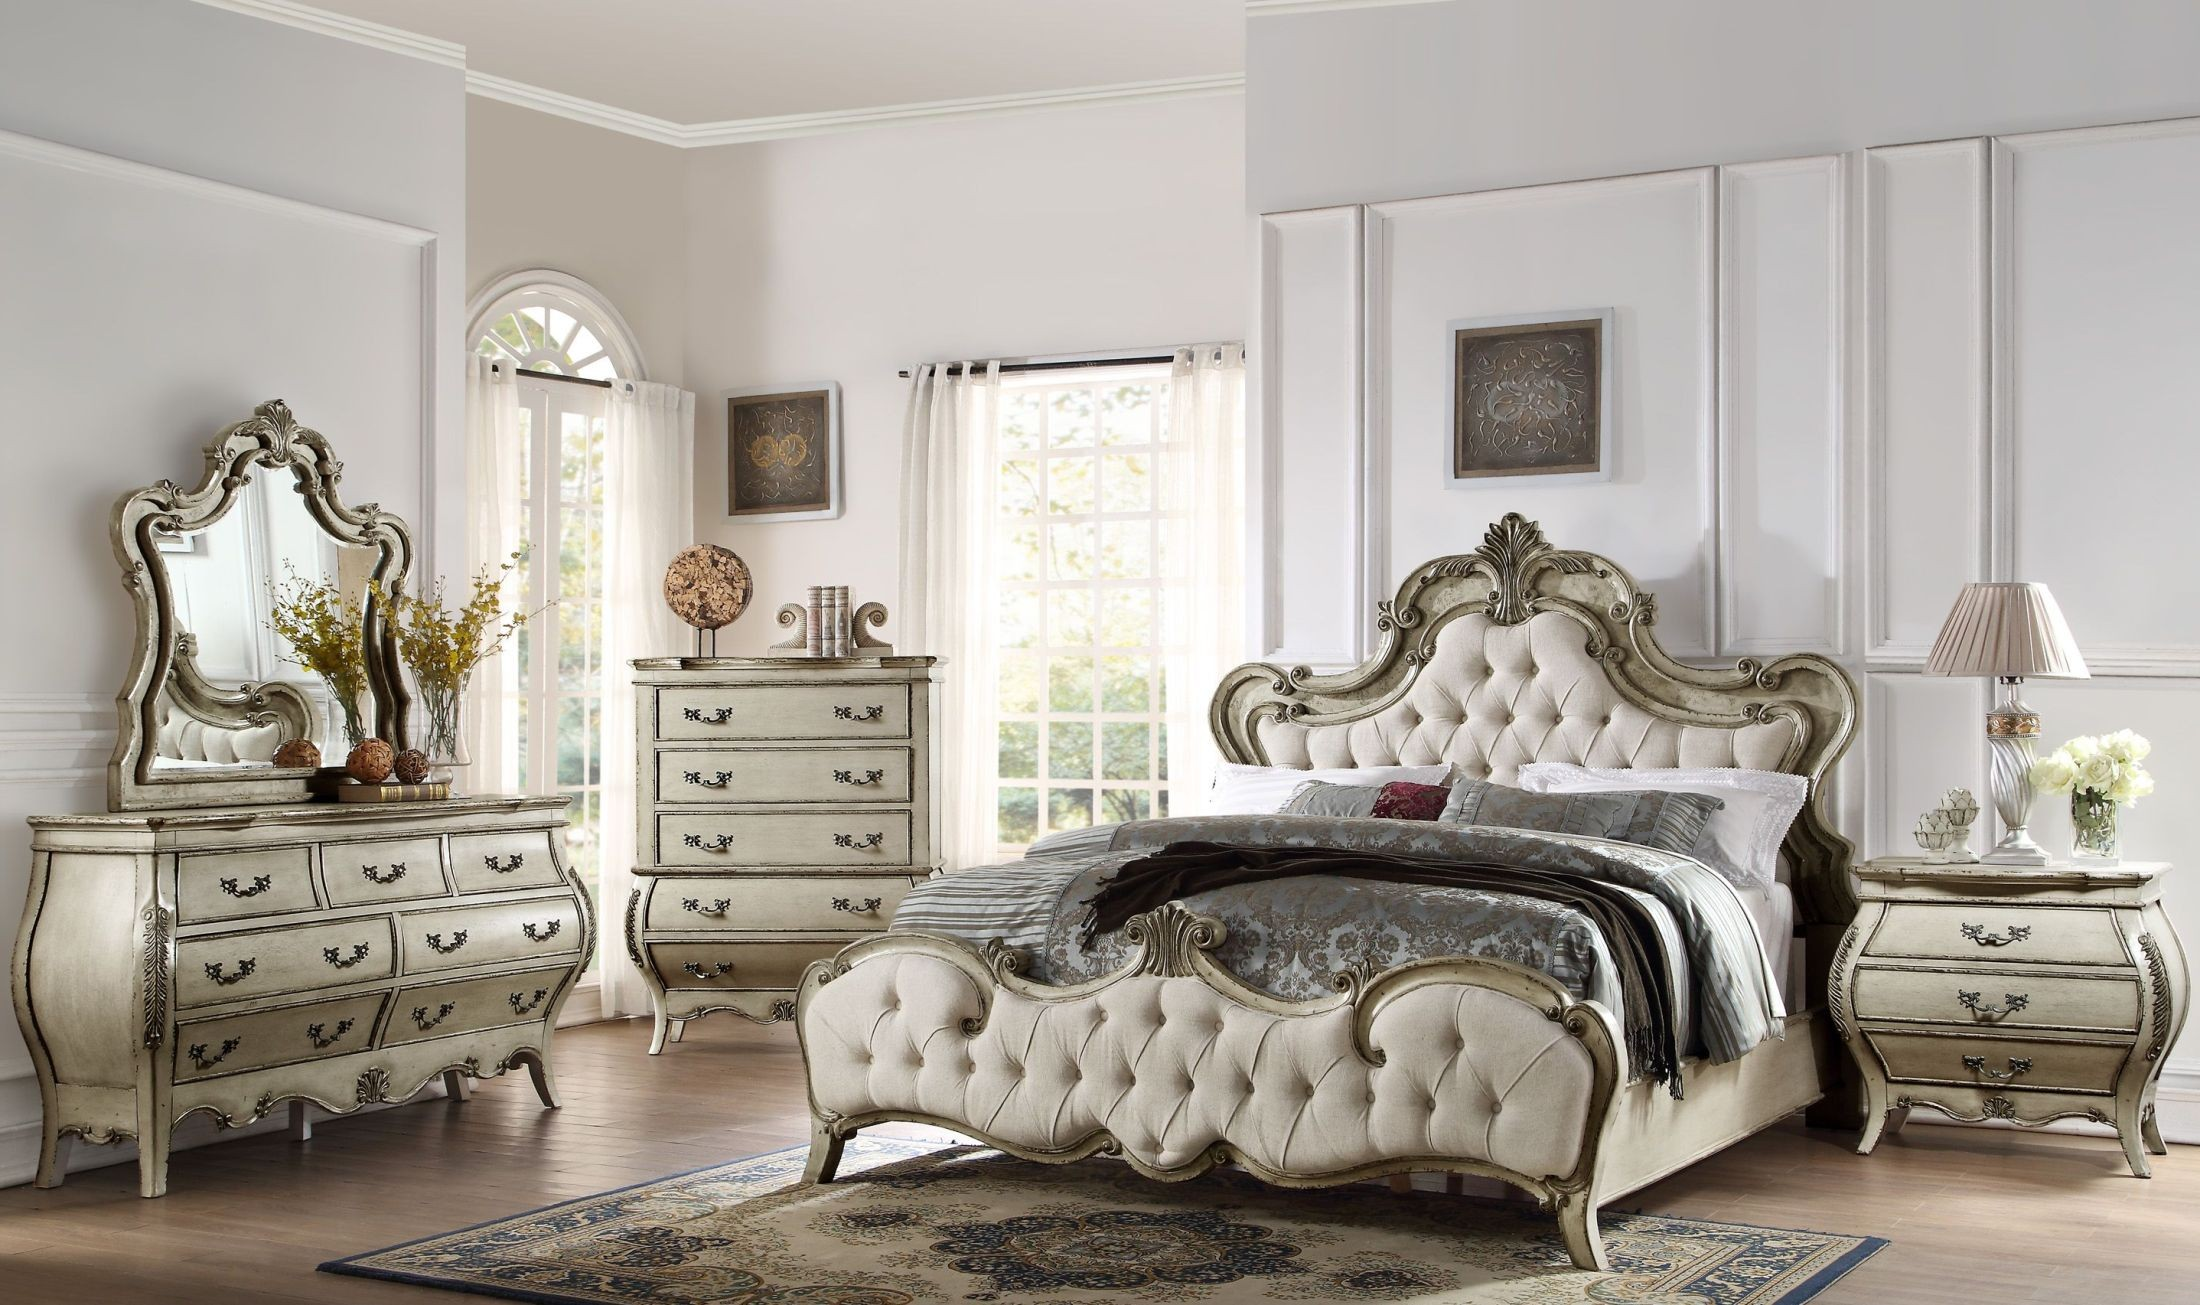 Elsmere Antique Grey Upholstered Bedroom Set from Homelegance ...